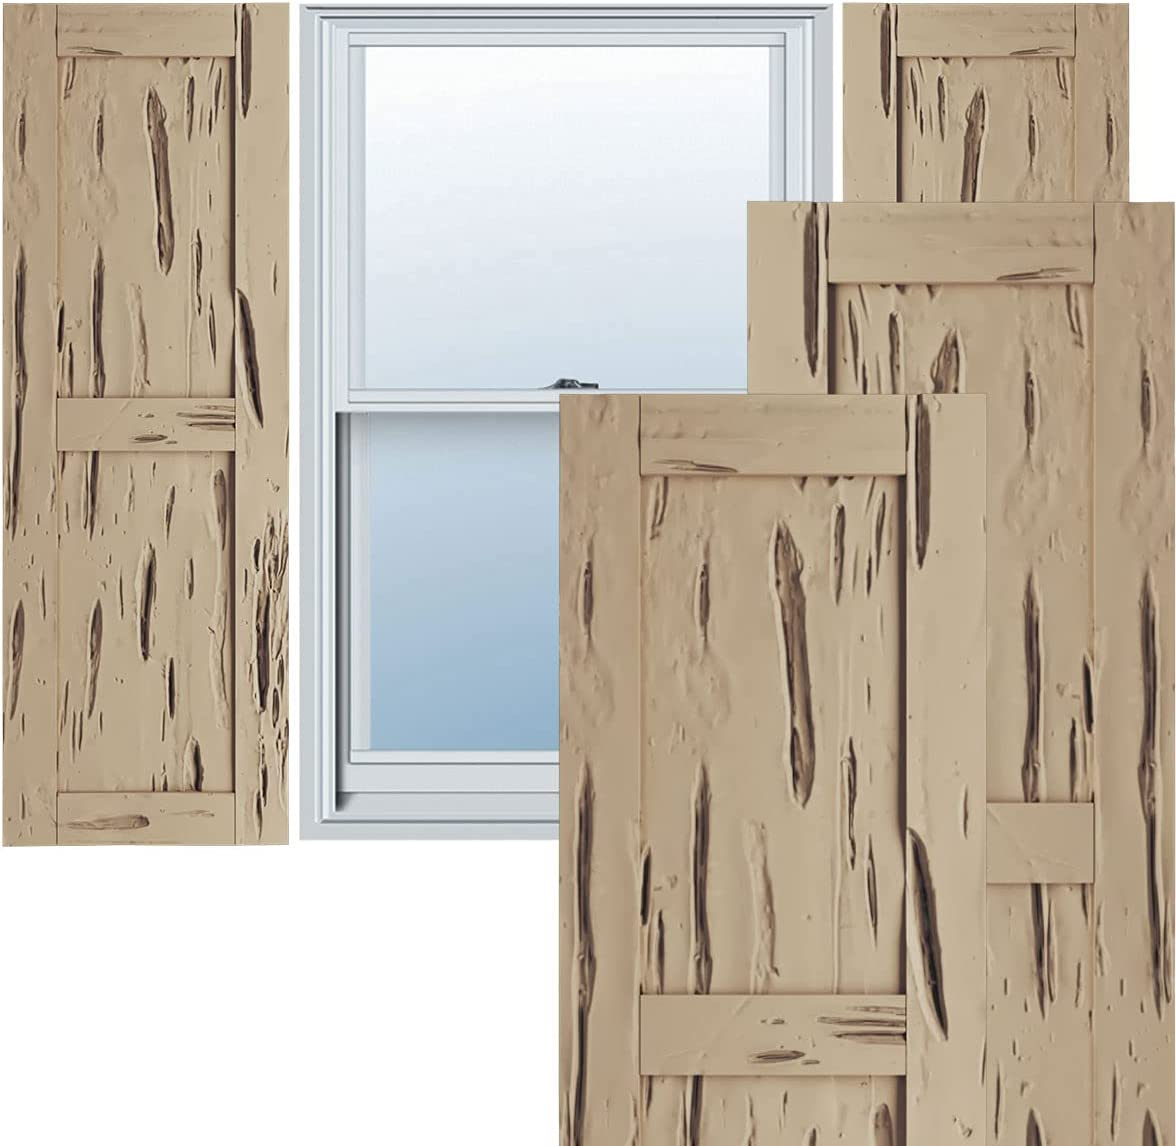 Sales for sale Ekena Millwork SHULVPC Faux Wood Shutters Cheap mail order shopping Rustic Two Per Pair